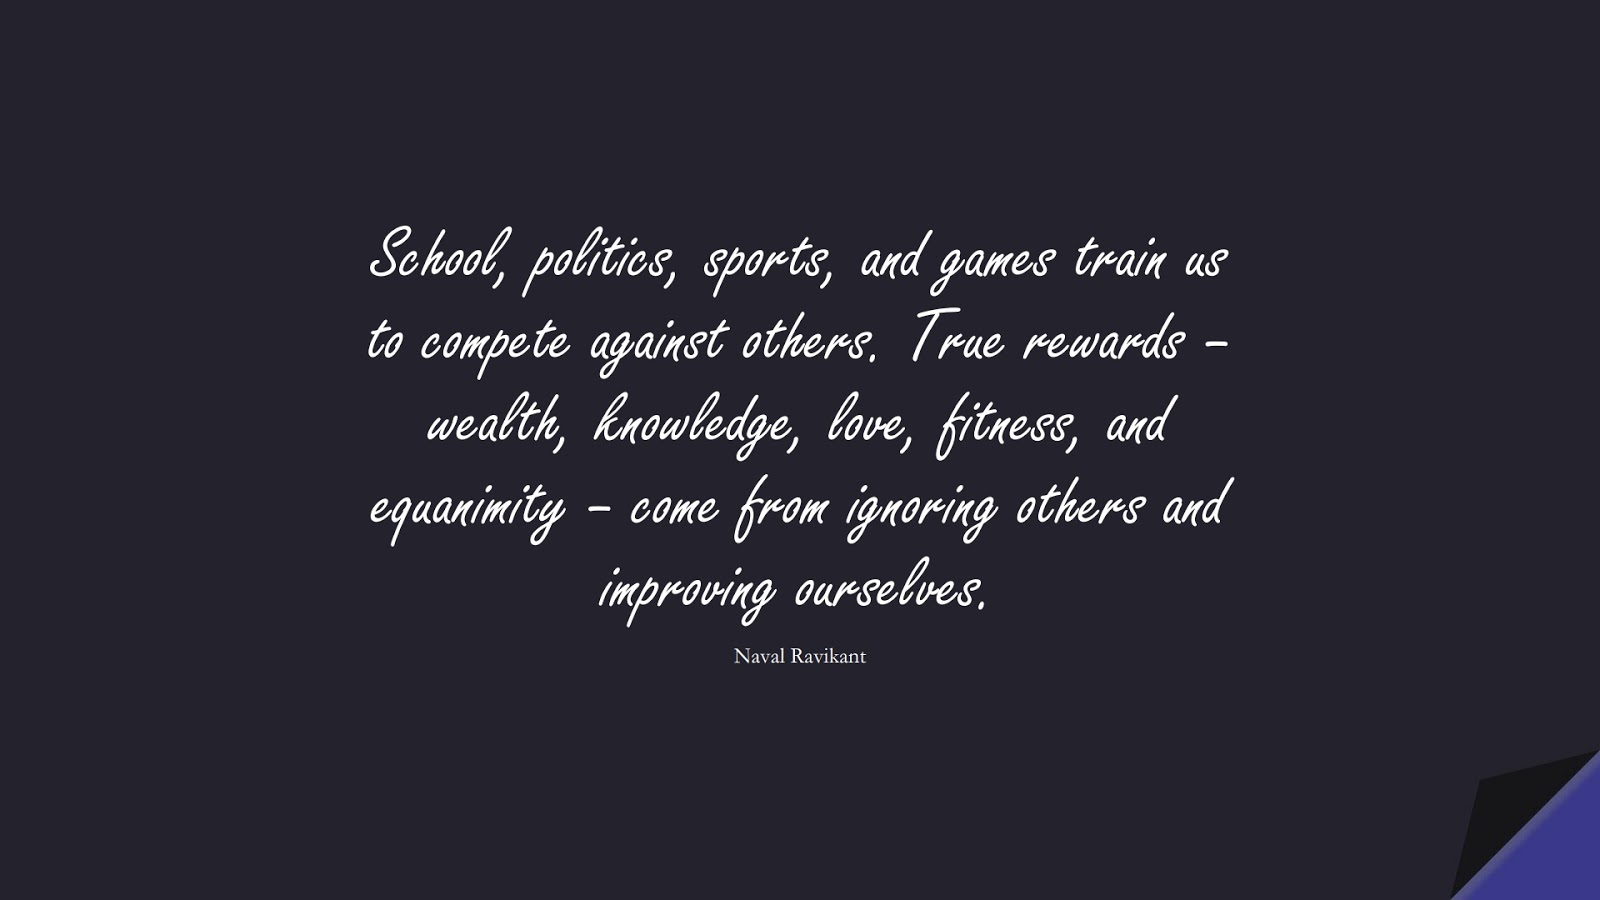 School, politics, sports, and games train us to compete against others. True rewards – wealth, knowledge, love, fitness, and equanimity – come from ignoring others and improving ourselves. (Naval Ravikant);  #BeYourselfQuotes